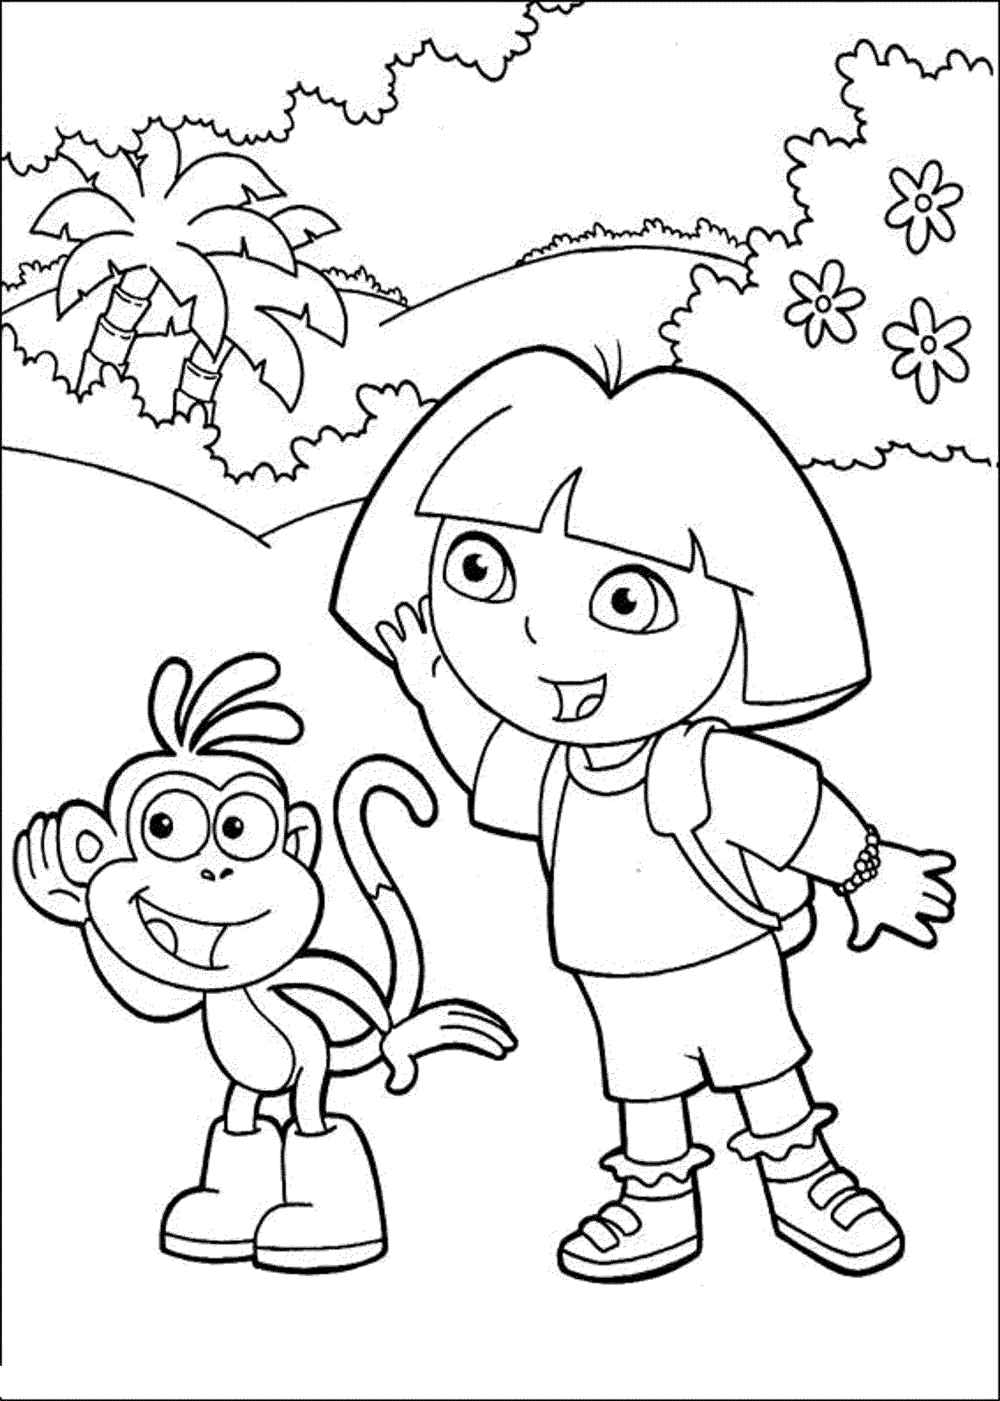 dora colouring print download dora coloring pages to learn new things dora colouring